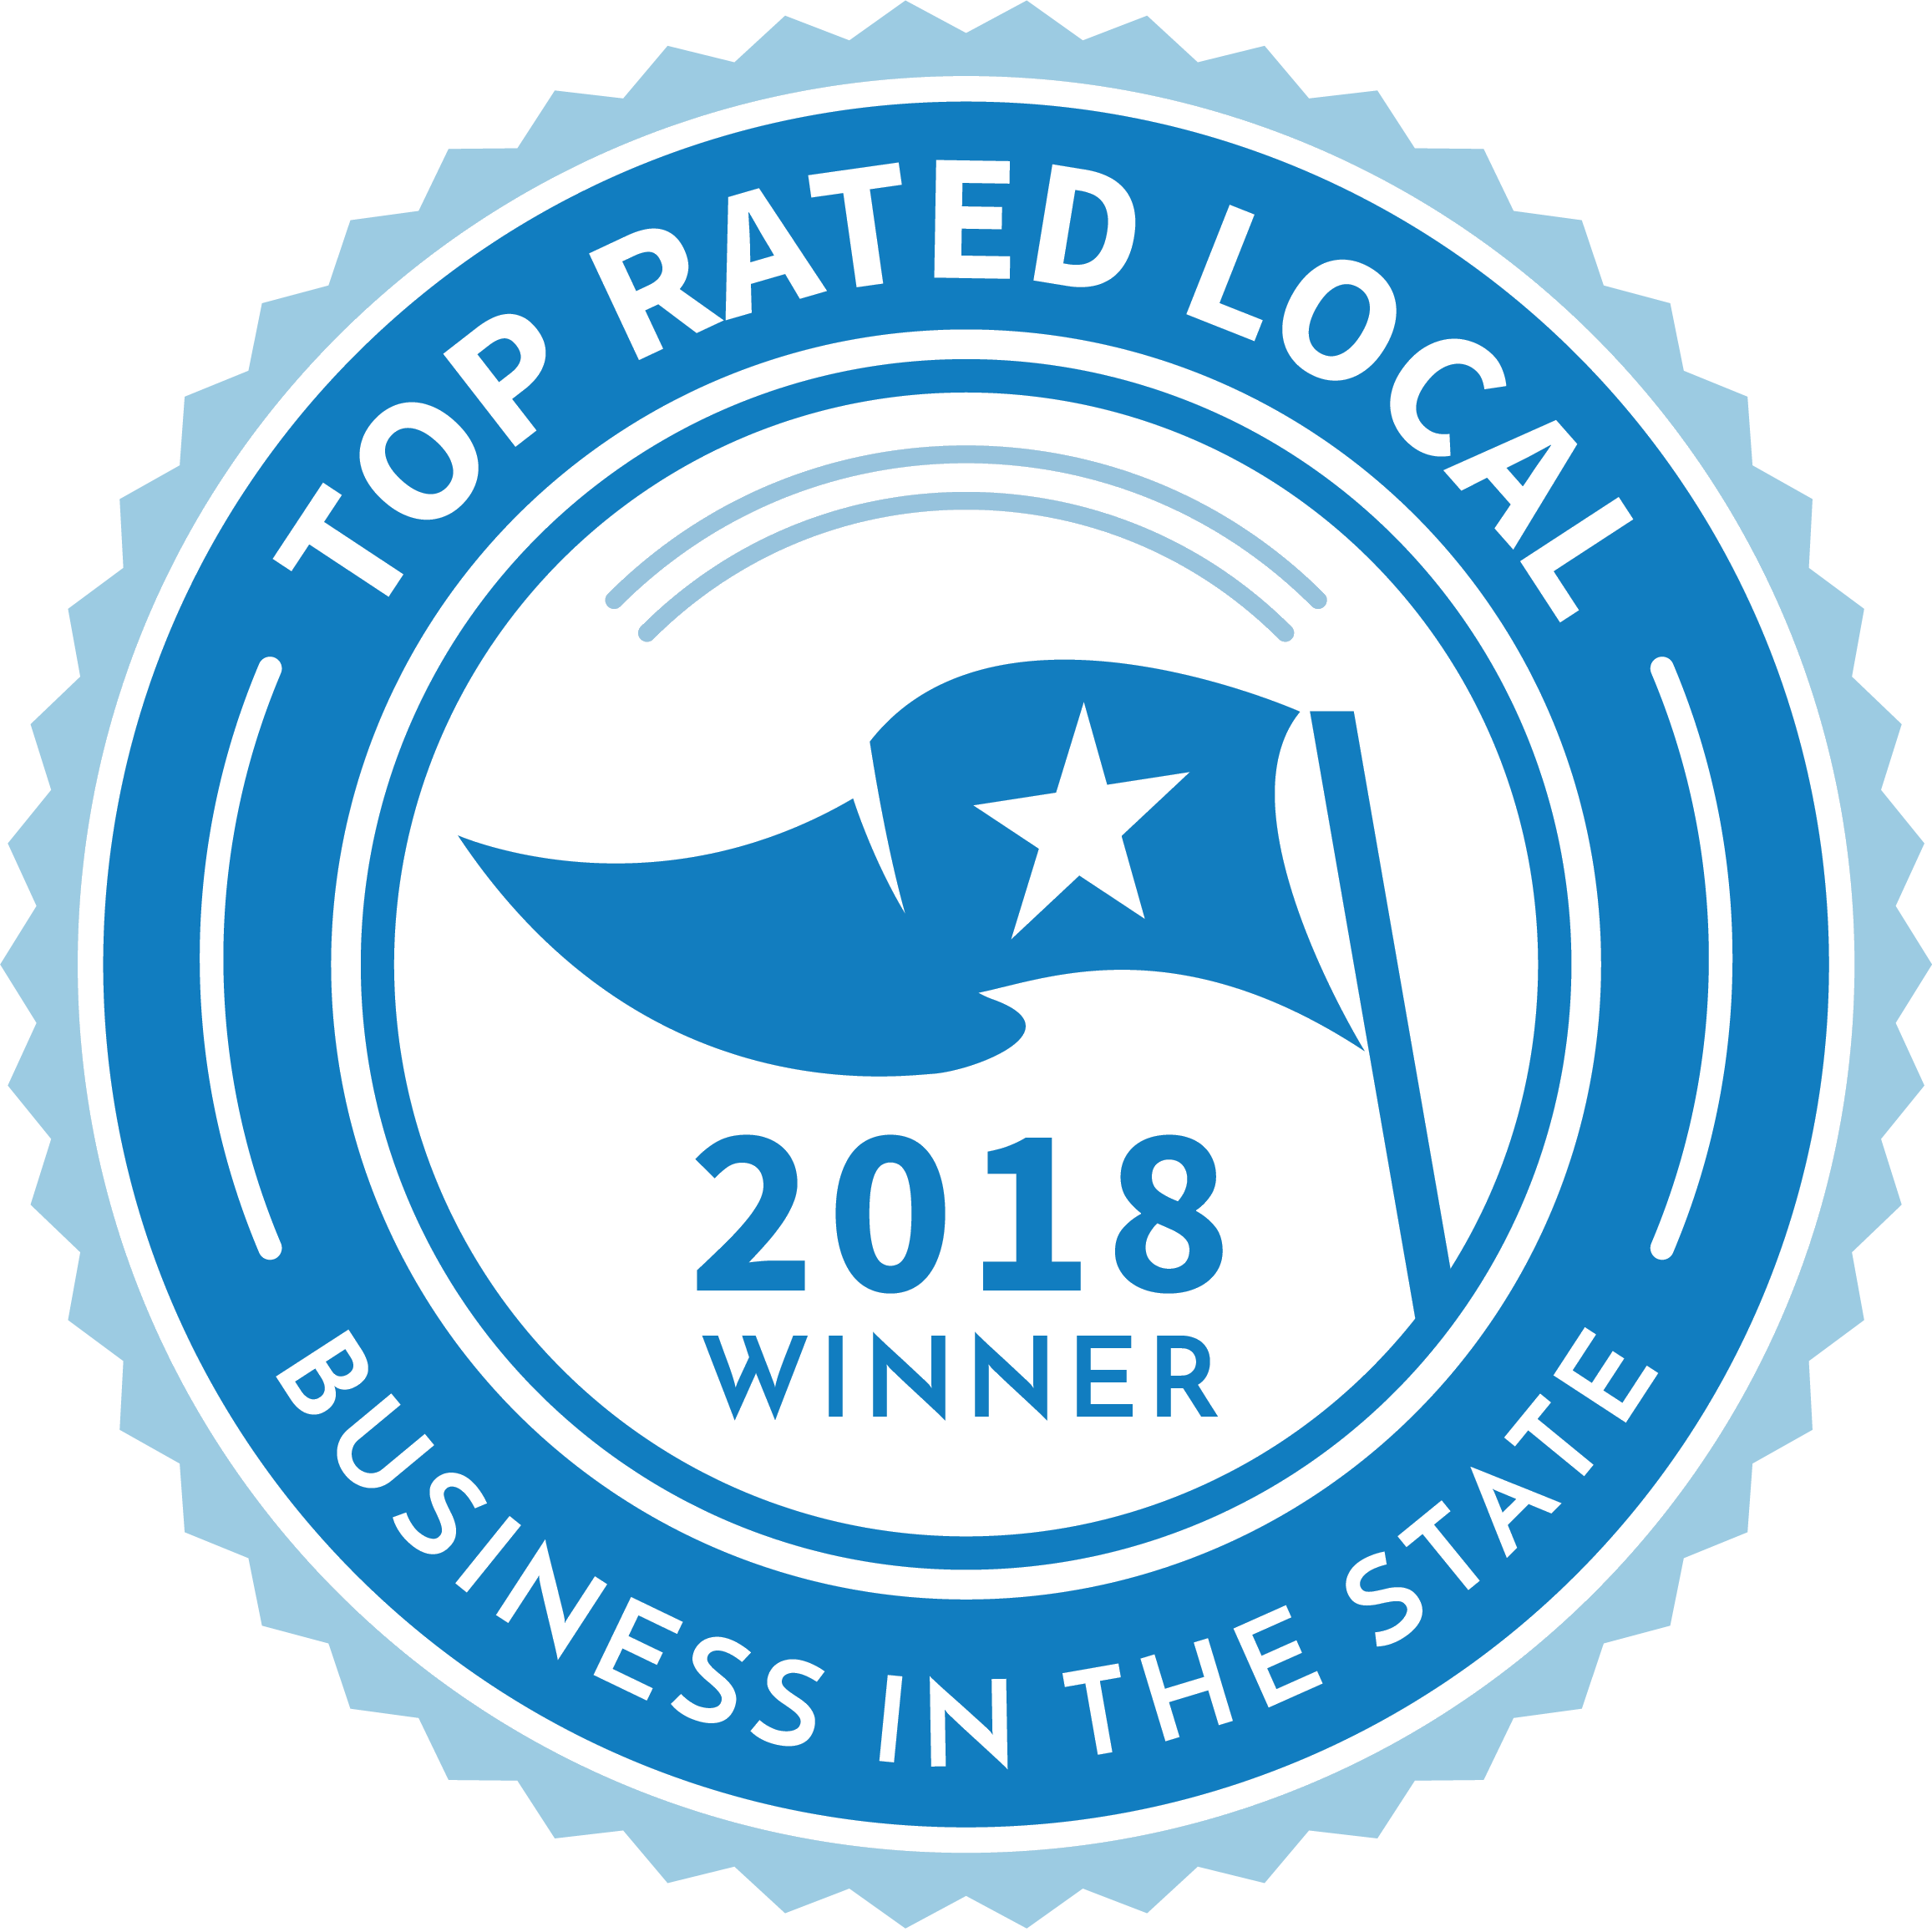 Voted top rated local business in the state 2018